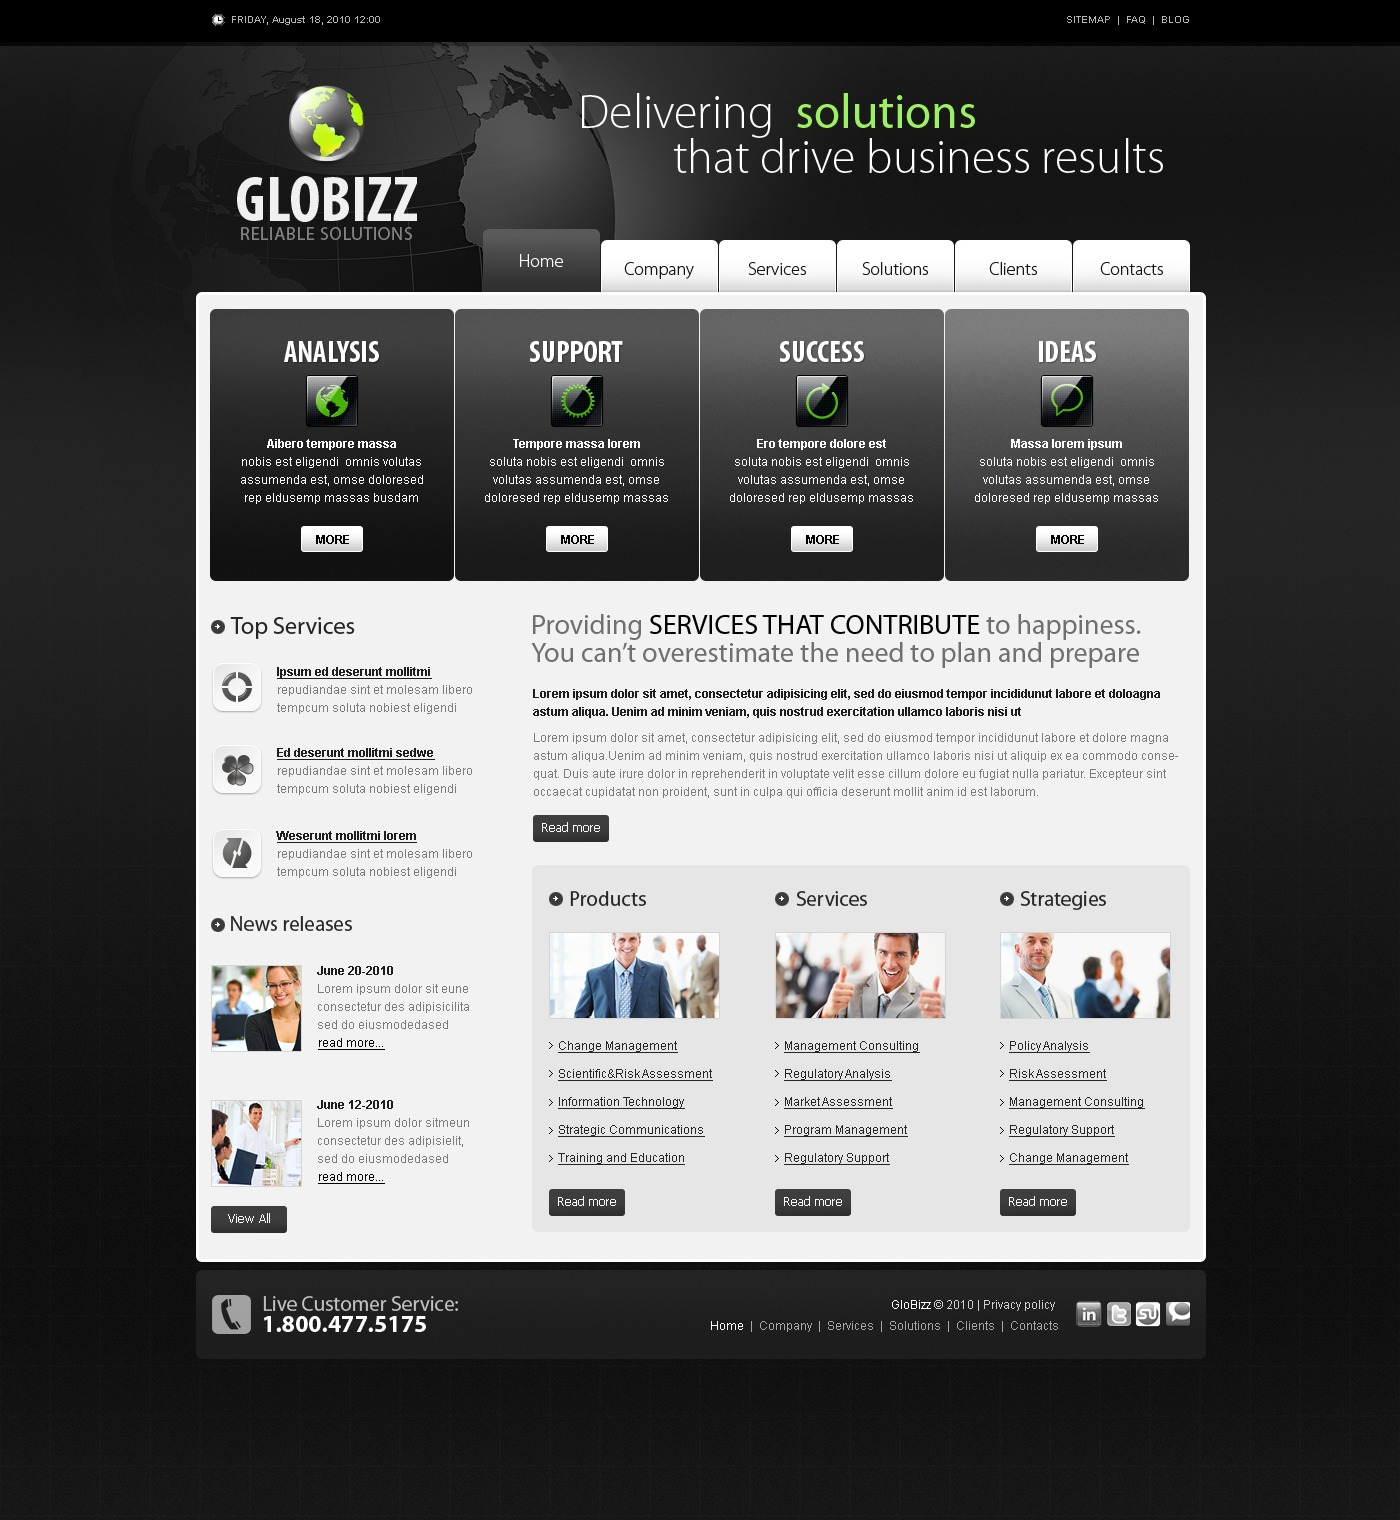 The Globizz Business Company PSD Design 54088, one of the best PSD templates of its kind (business, flash 8, wide), also known as globizz business company PSD template, corporate solutions PSD template, innovations PSD template, contacts PSD template, service PSD template, support PSD template, information dealer PSD template, stocks PSD template, team PSD template, success PSD template, money PSD template, marketing PSD template, director PSD template, manager PSD template, analytics PSD template, planning PSD template, limited PSD template, office PSD template, sales and related with globizz business company, corporate solutions, innovations, contacts, service, support, information dealer, stocks, team, success, money, marketing, director, manager, analytics, planning, limited, office, sales, etc.